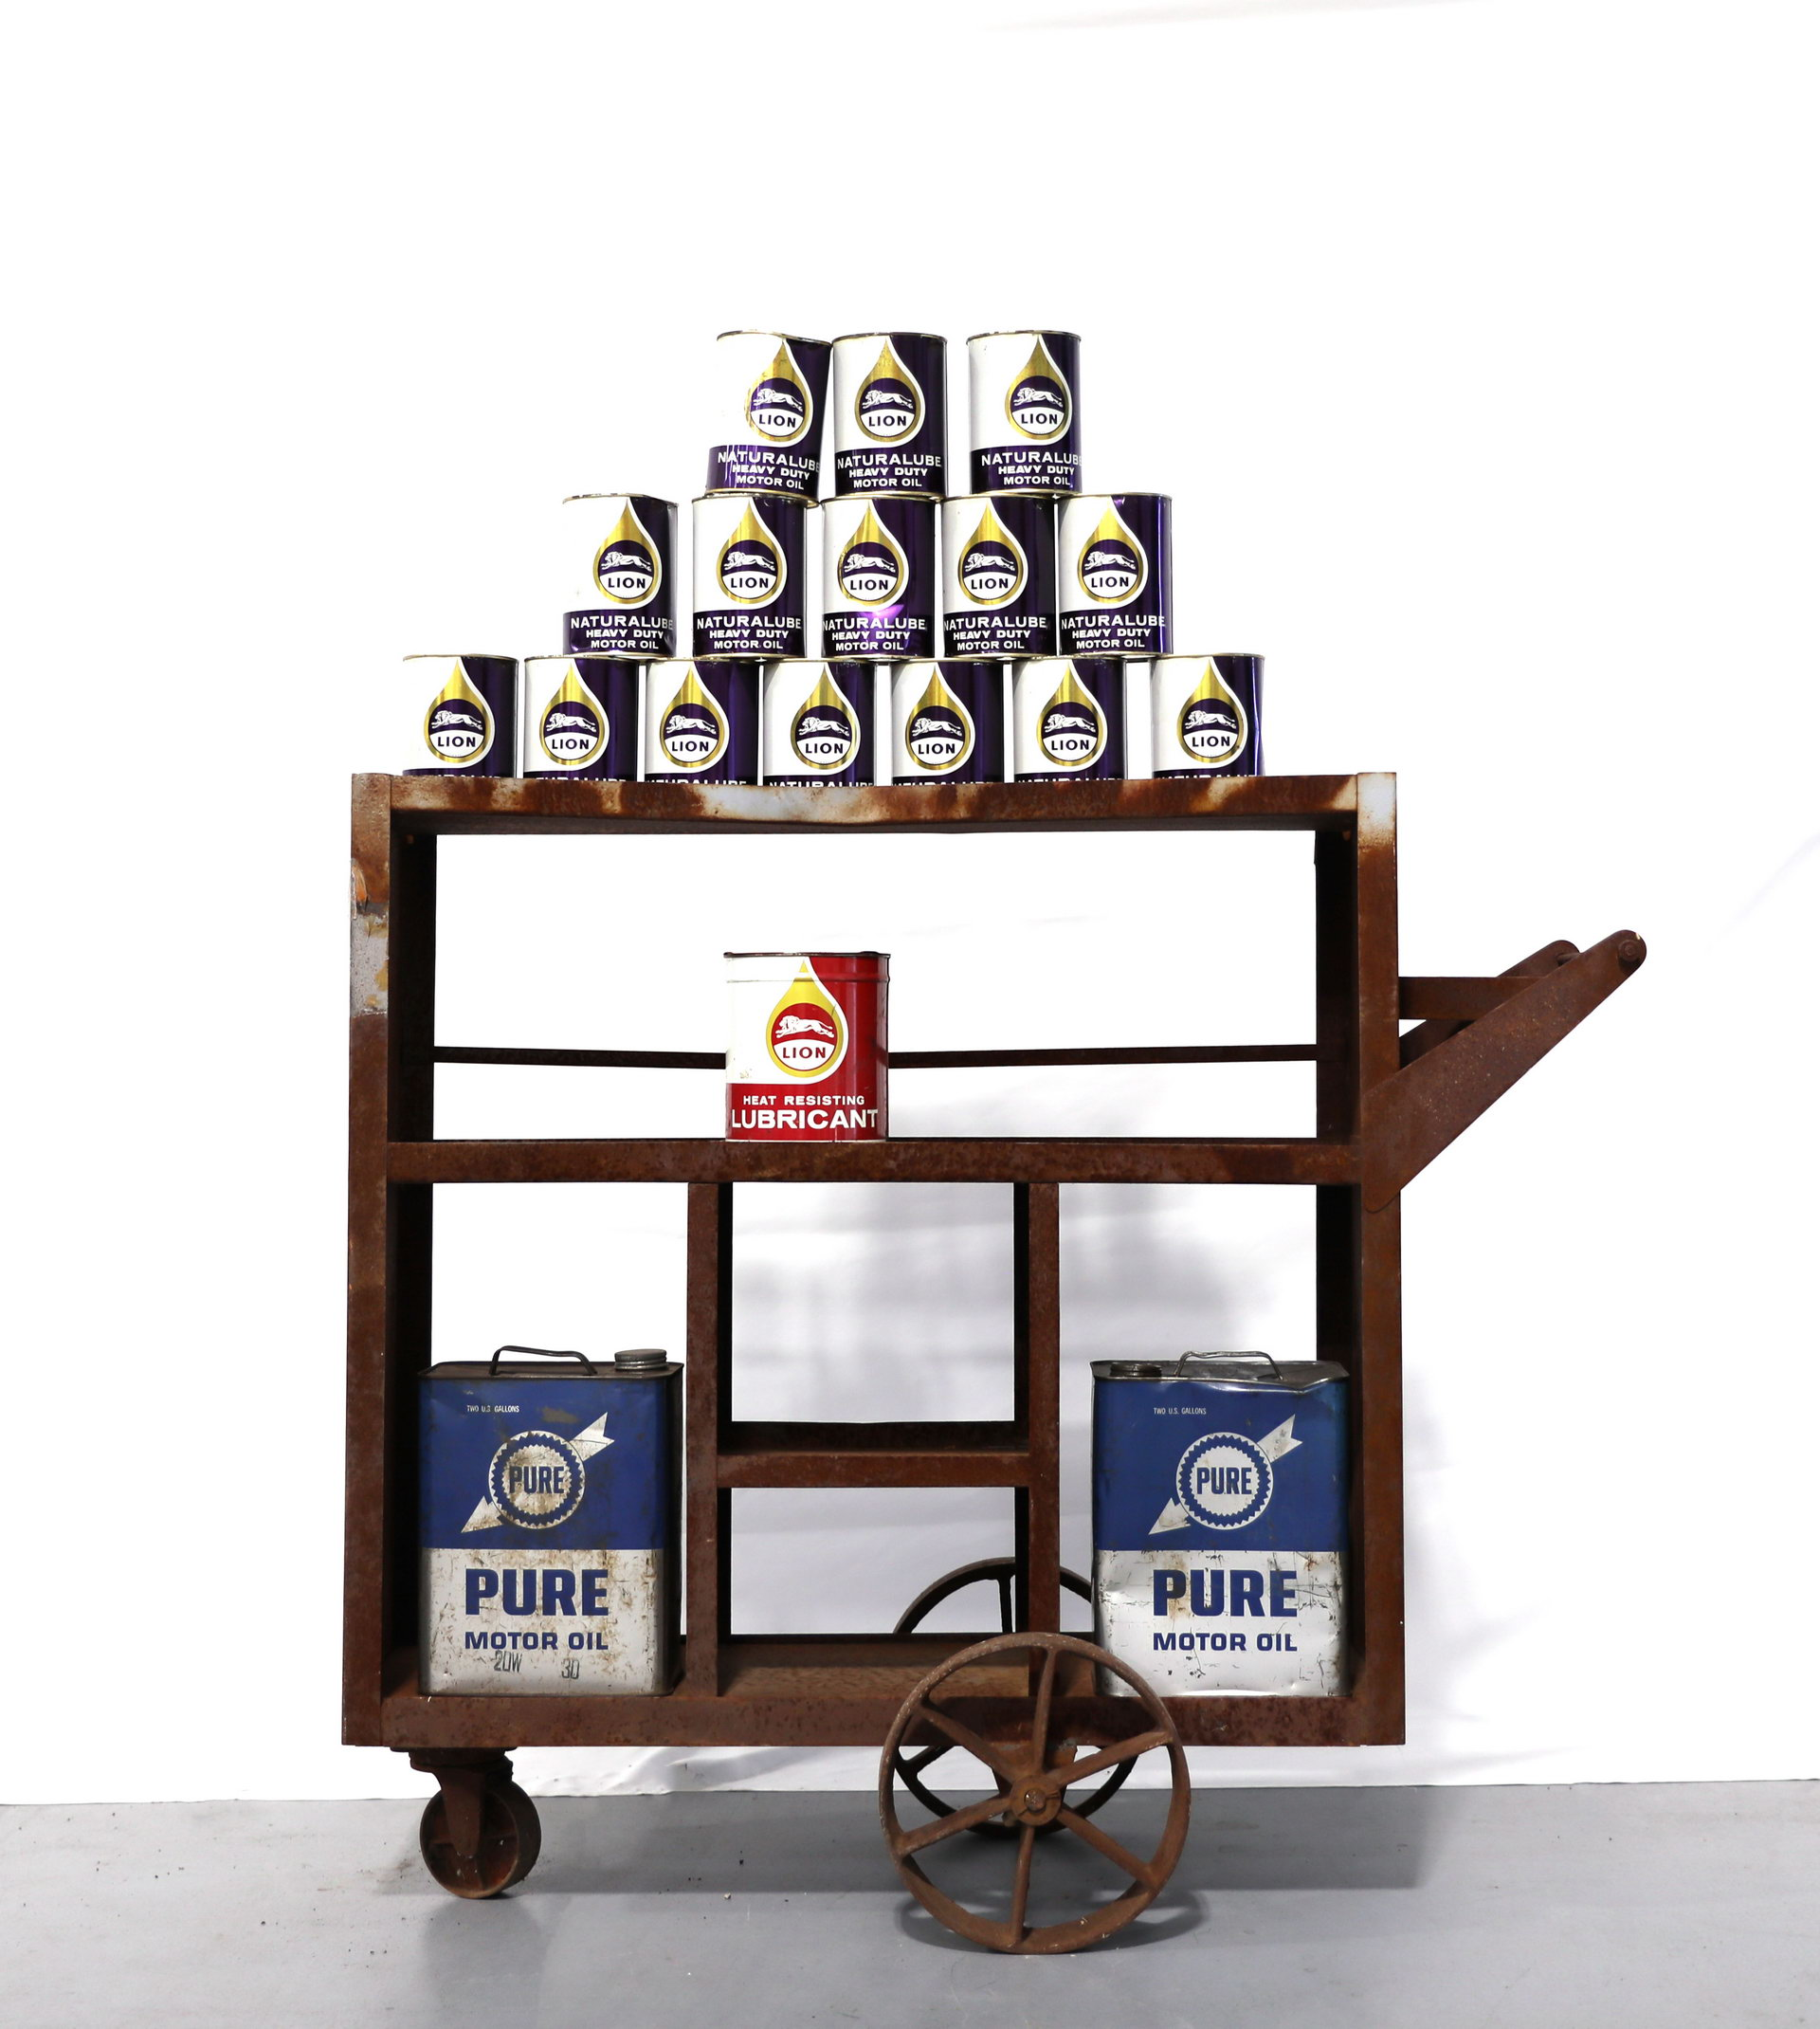 Rolling Metal Oil Can Rack Display with LION Oil Cans